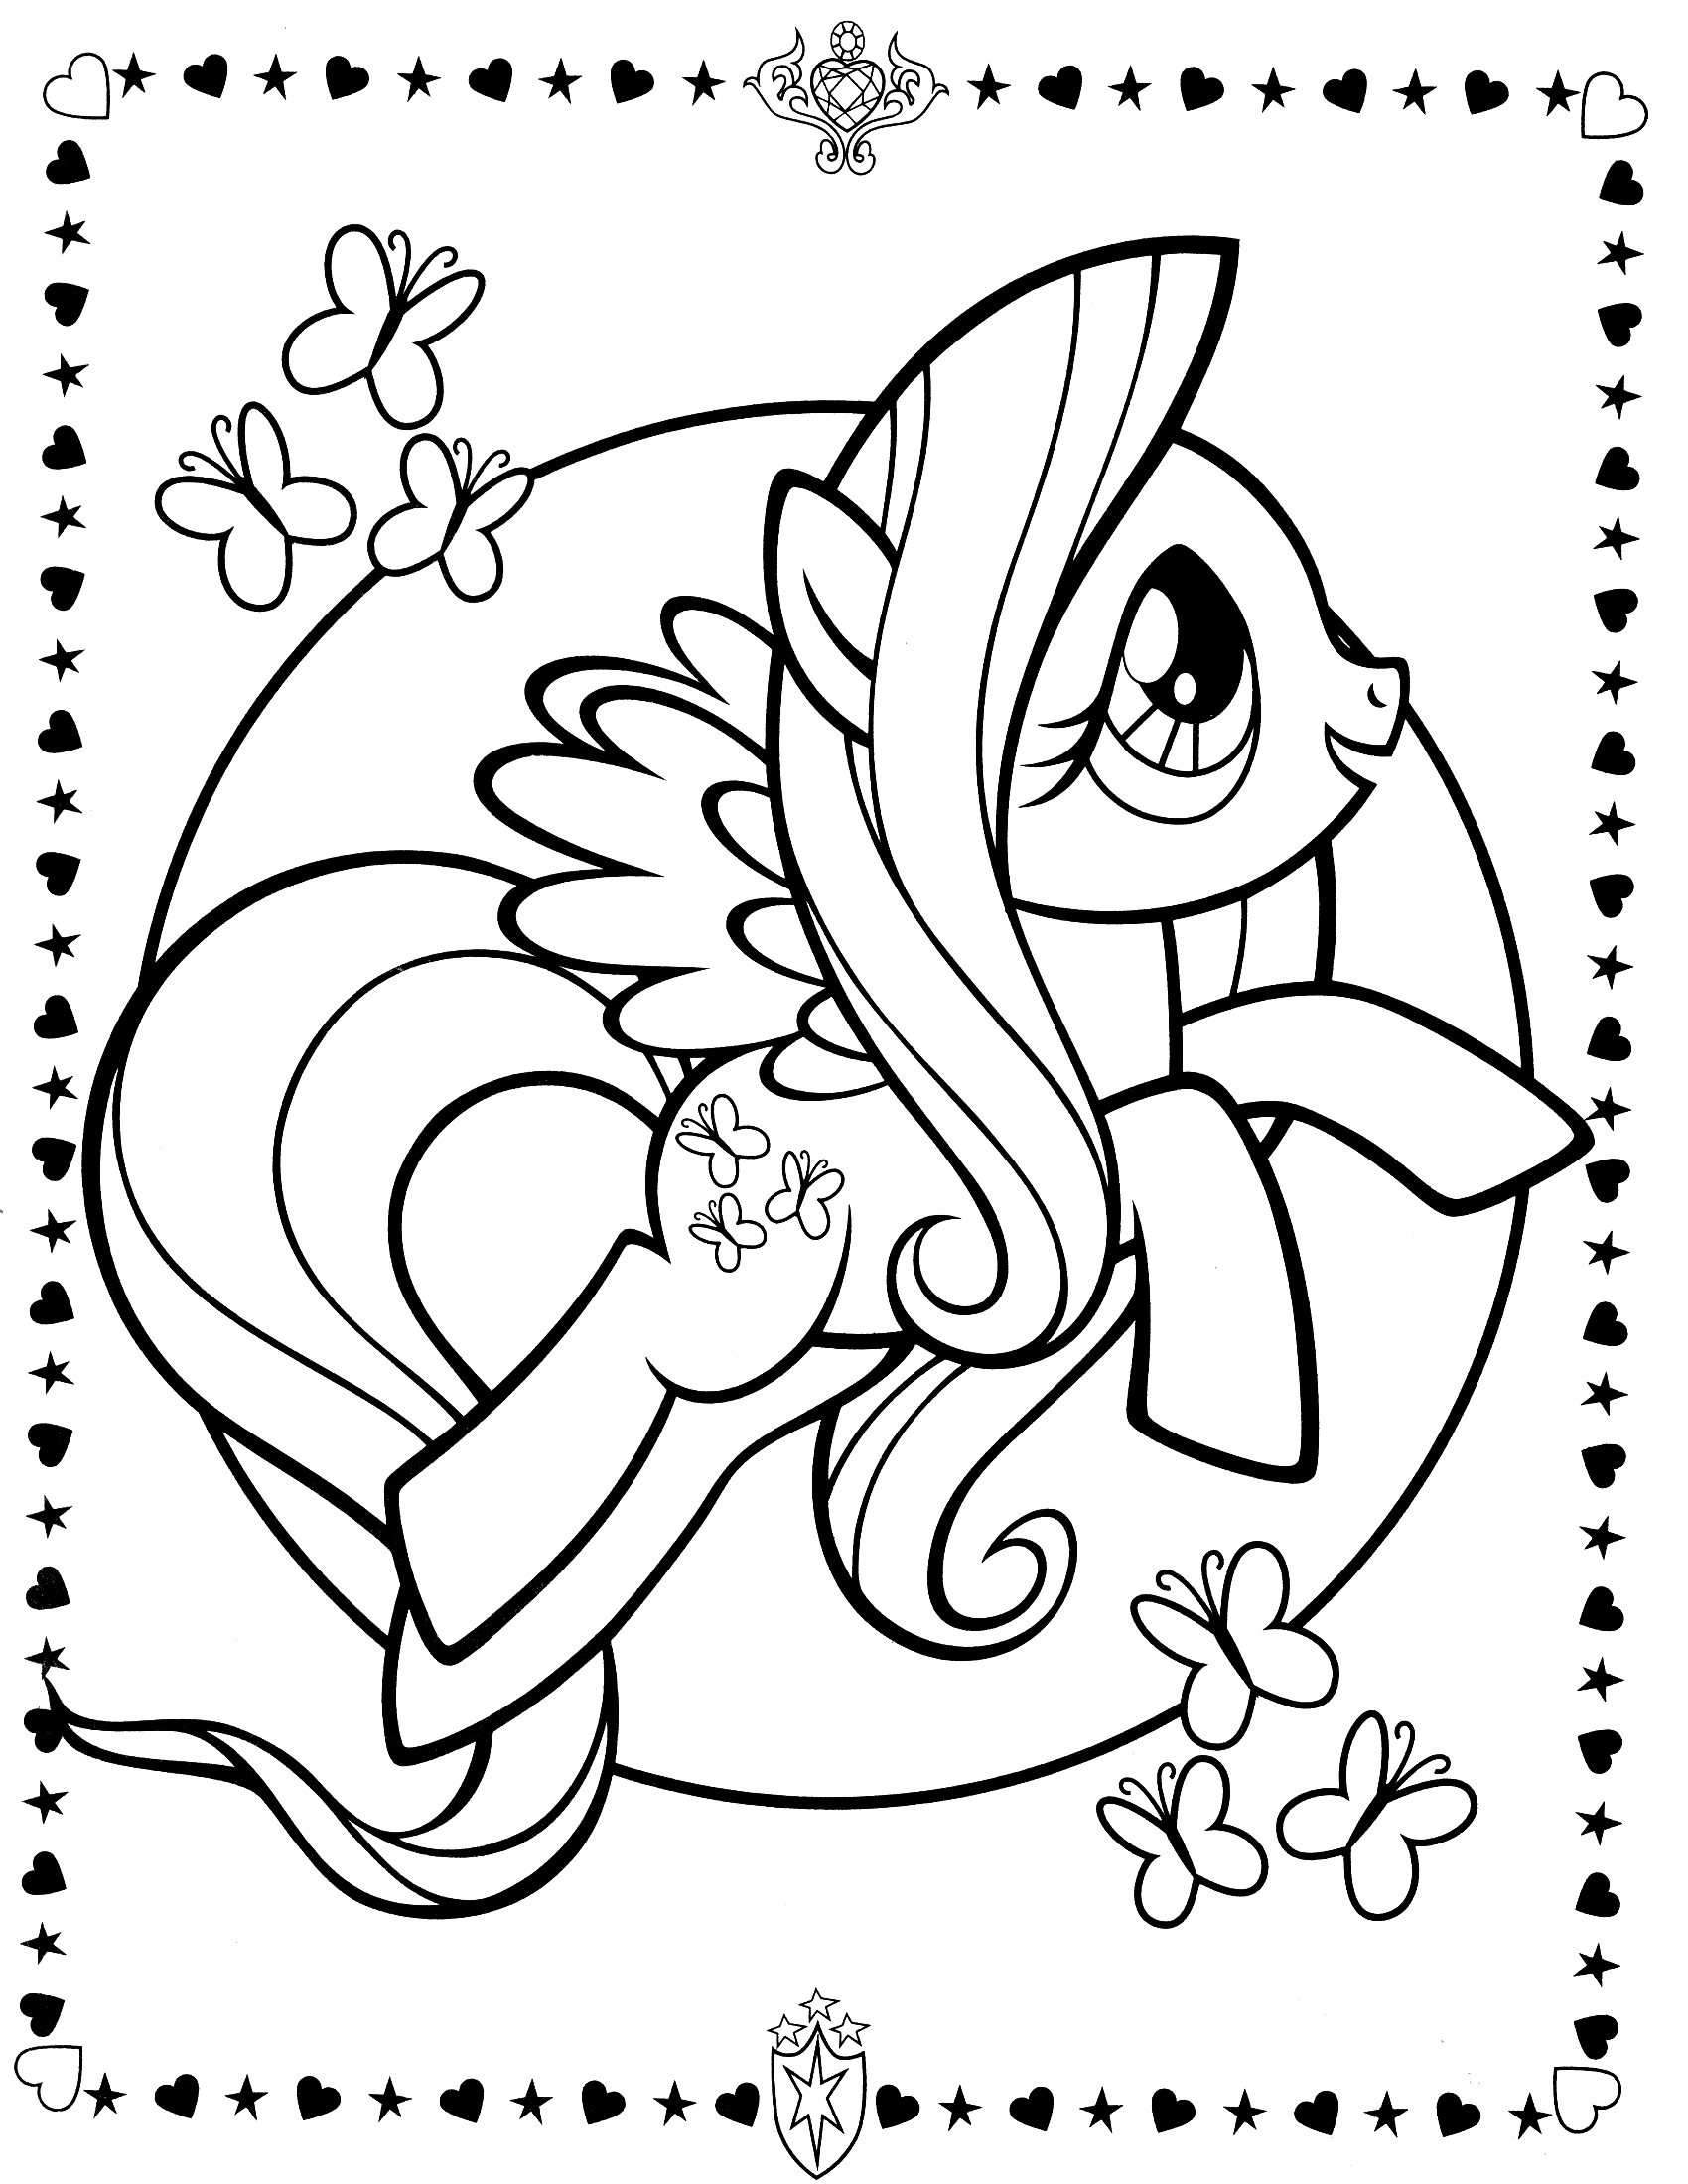 Drawn my little pony coloring book Coloring My Results Yahoo Pony